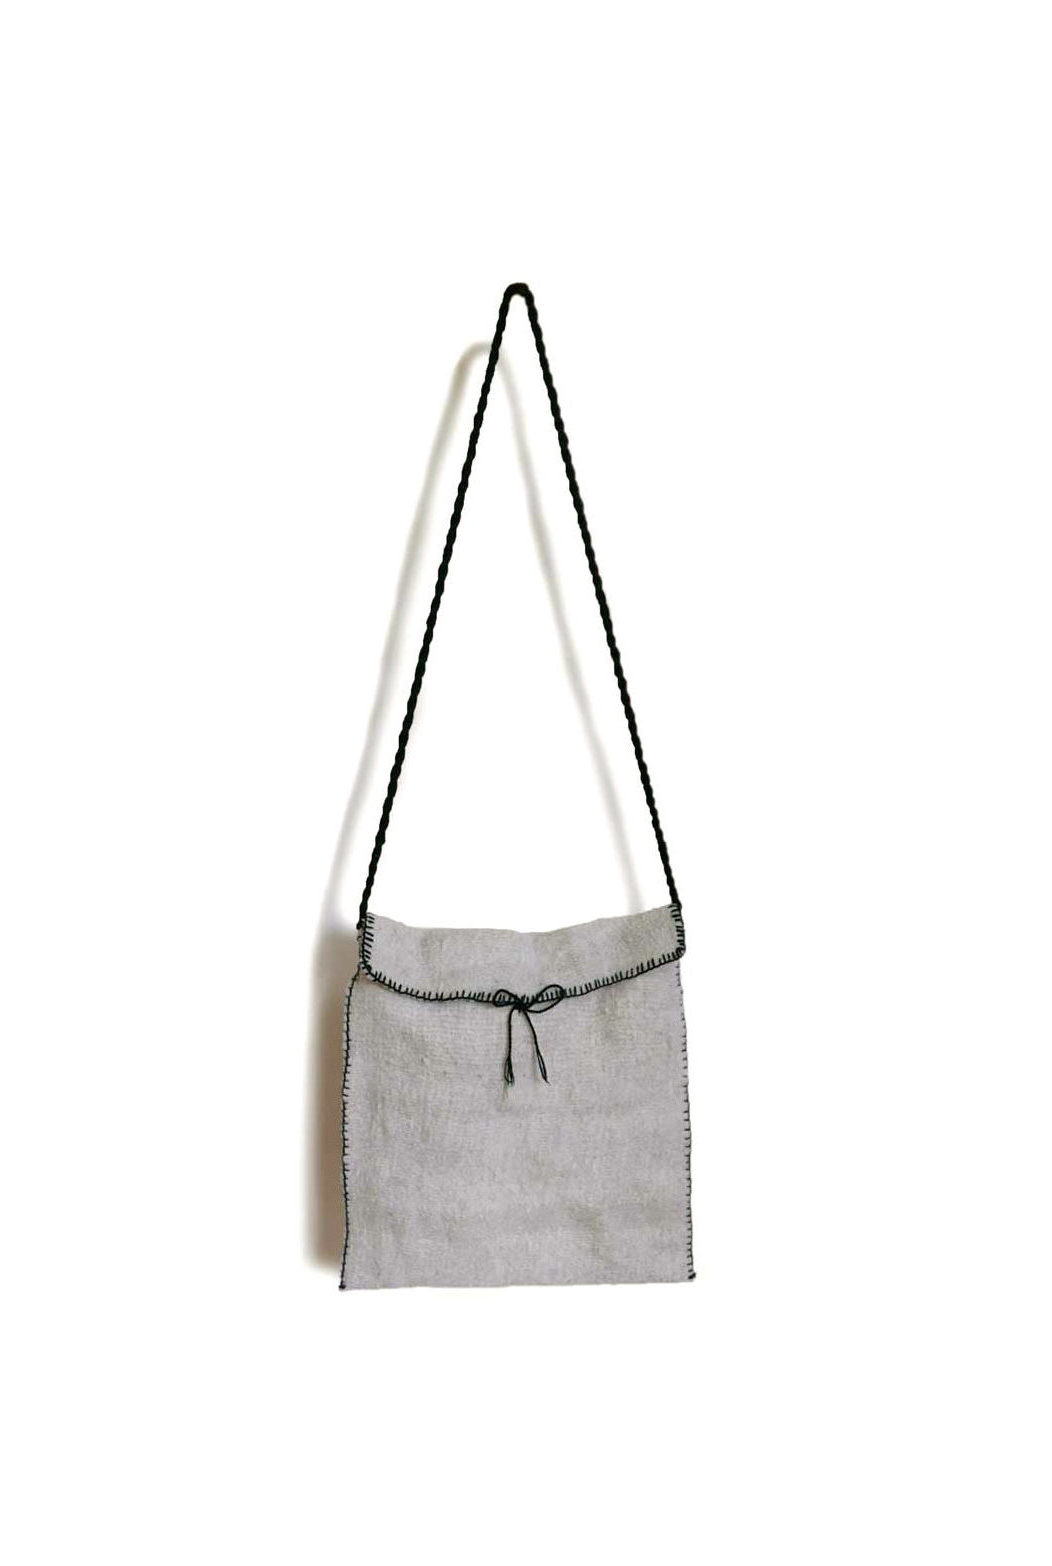 Cream Lana Wool Cross Body Bag - www.nidocollective.com #woolbag #backstrapweaving #mexicanhandmade #mexicanbag